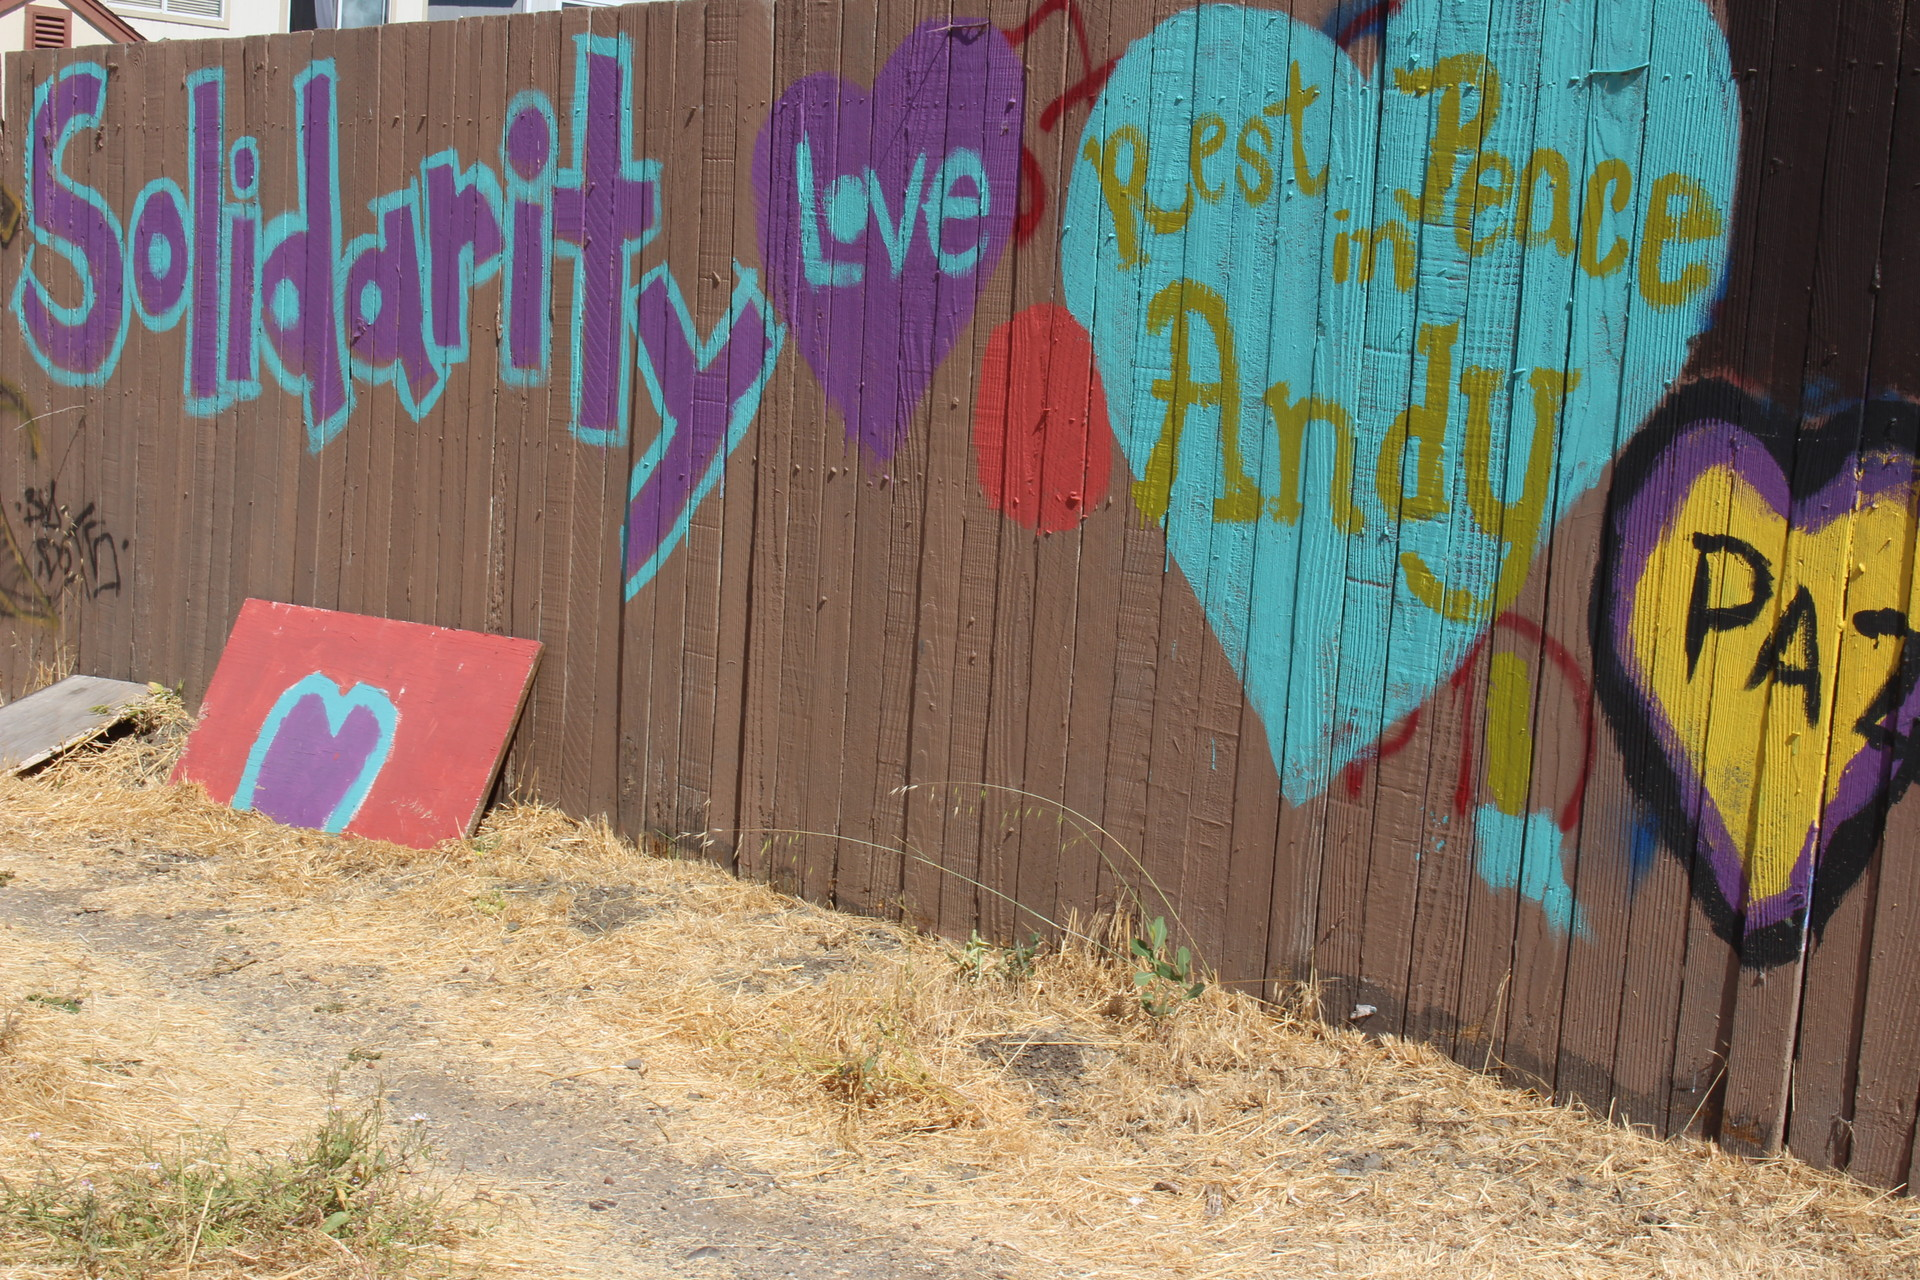 Paintings decorate a fence just feet away from where Andy Lopez died in 2013. Residents lobbied the county to build a park in the now empty lot. Construction of Andy's Unity Park is set to begin in the fall, with design input from residents.